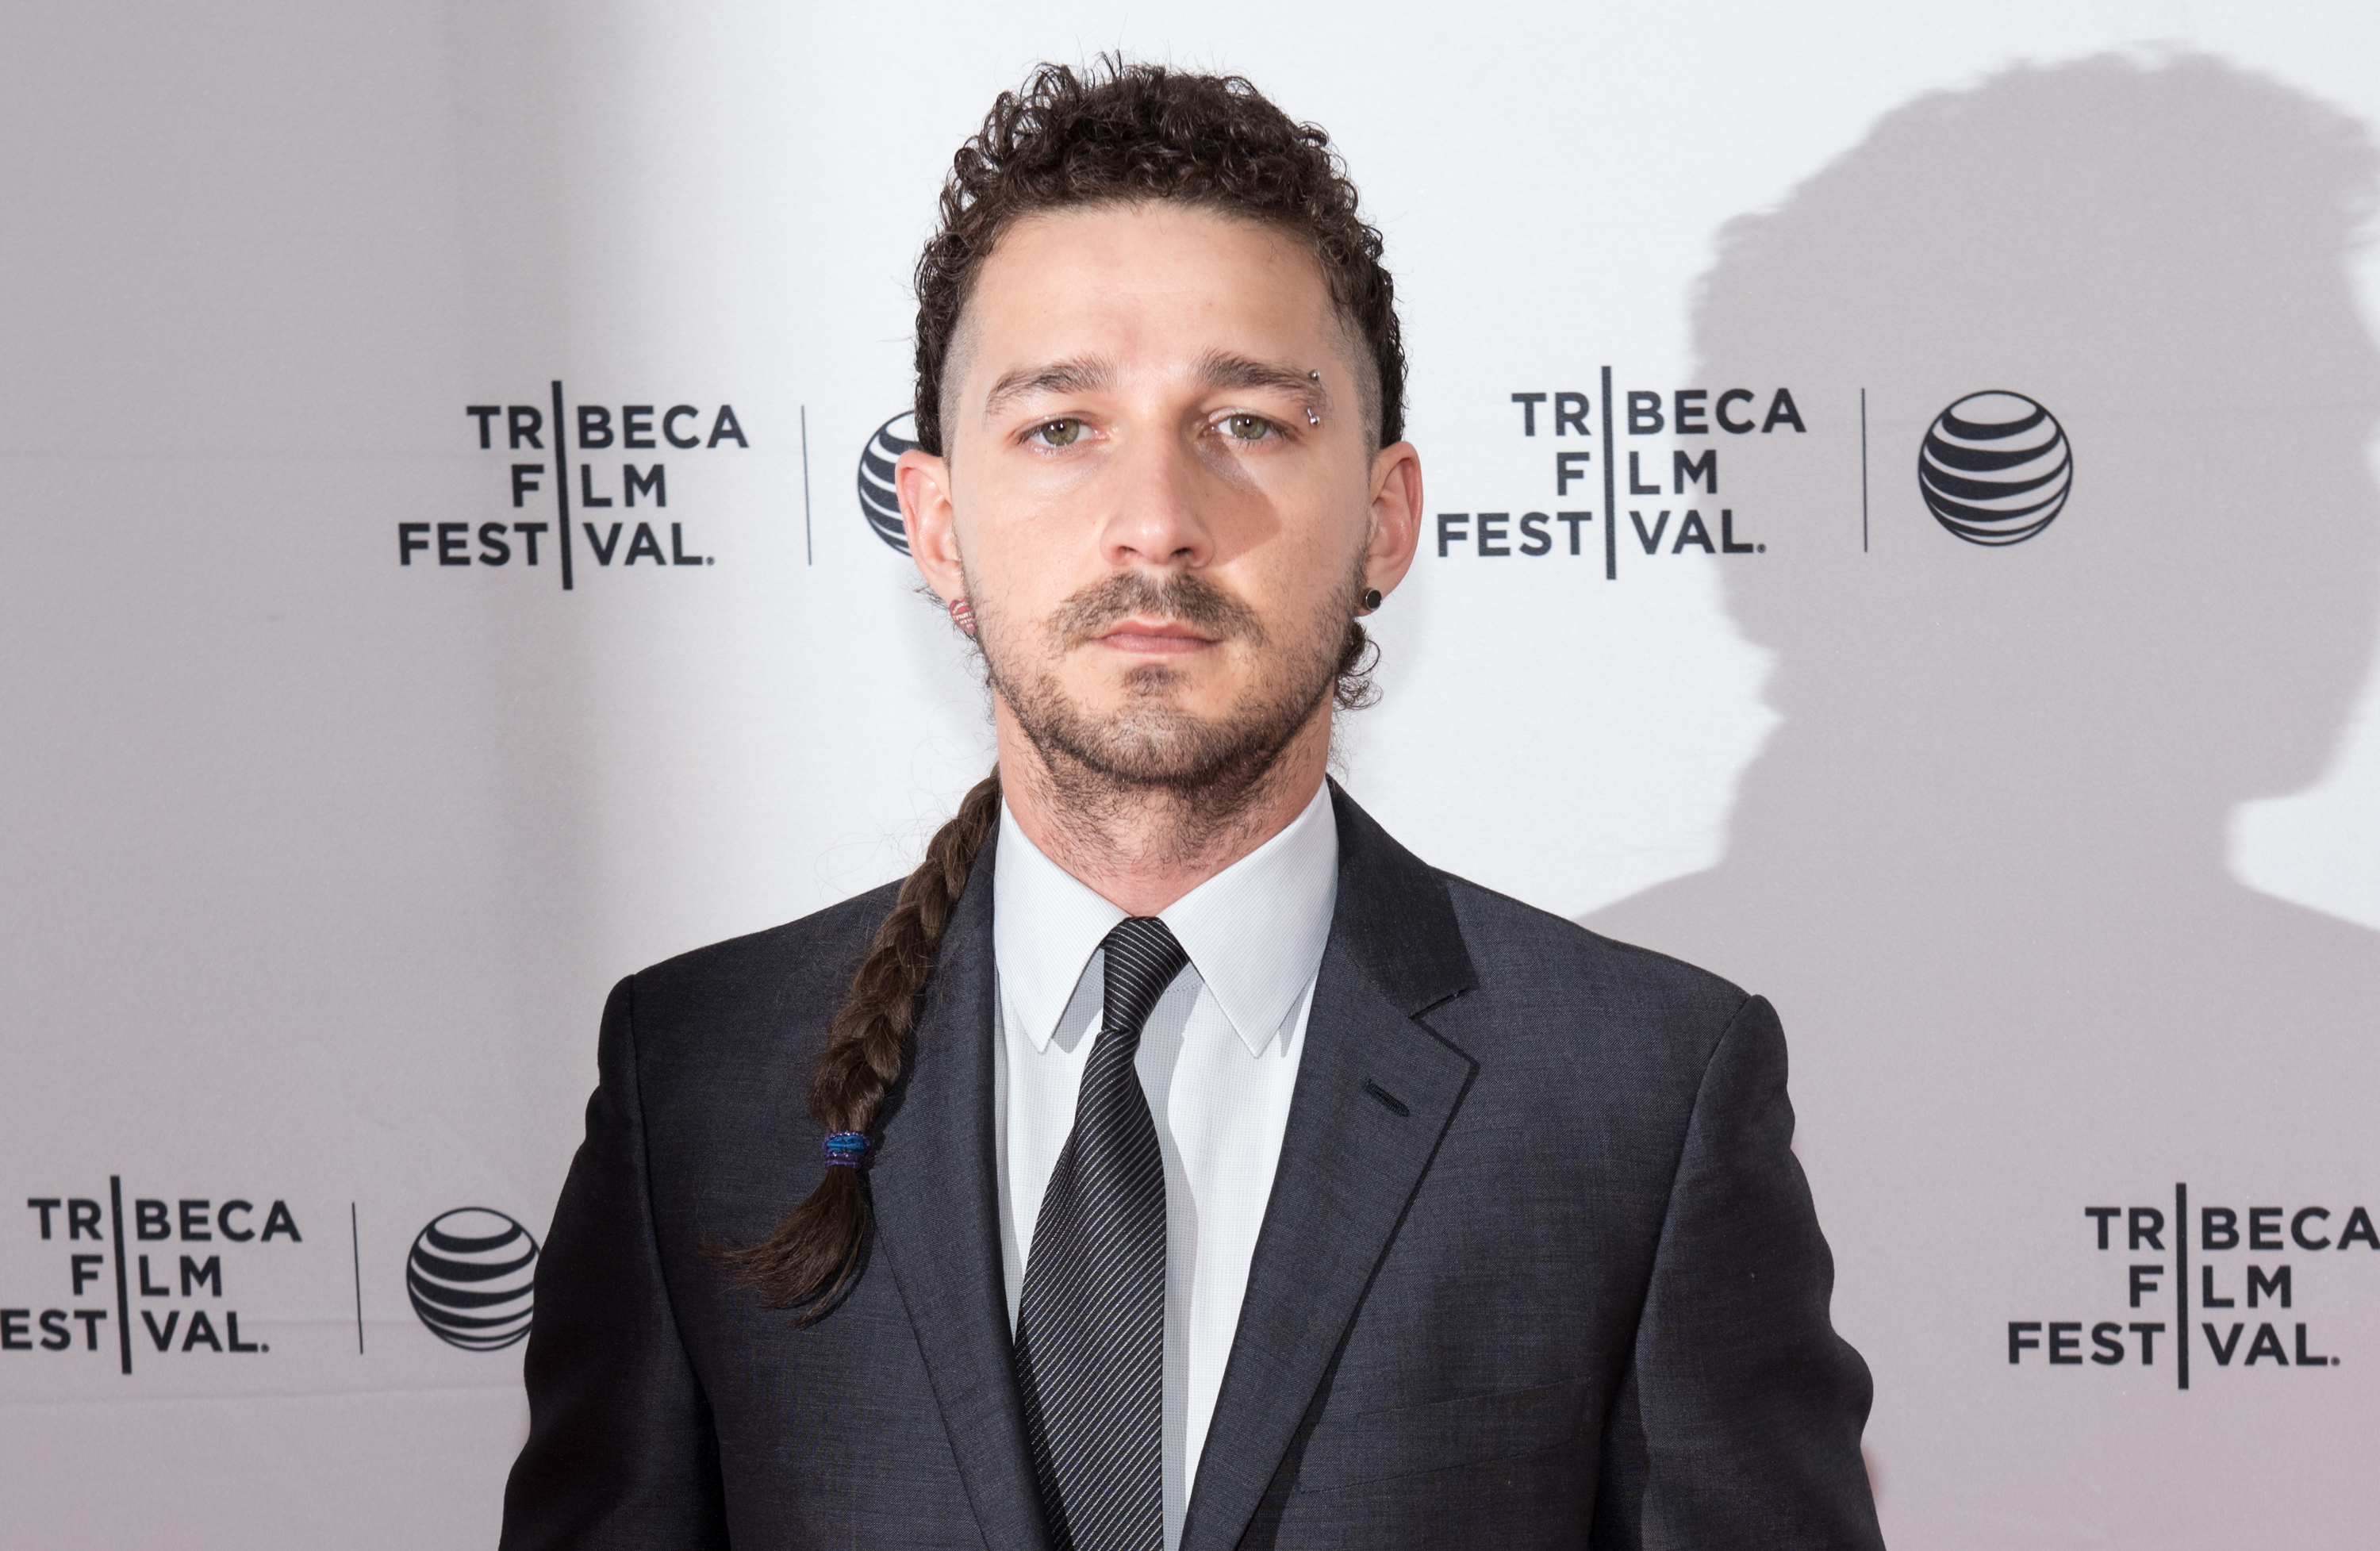 Shia LaBeouf's livestreamed Donald Trump protest project gets some celebrity help from Jaden Smith